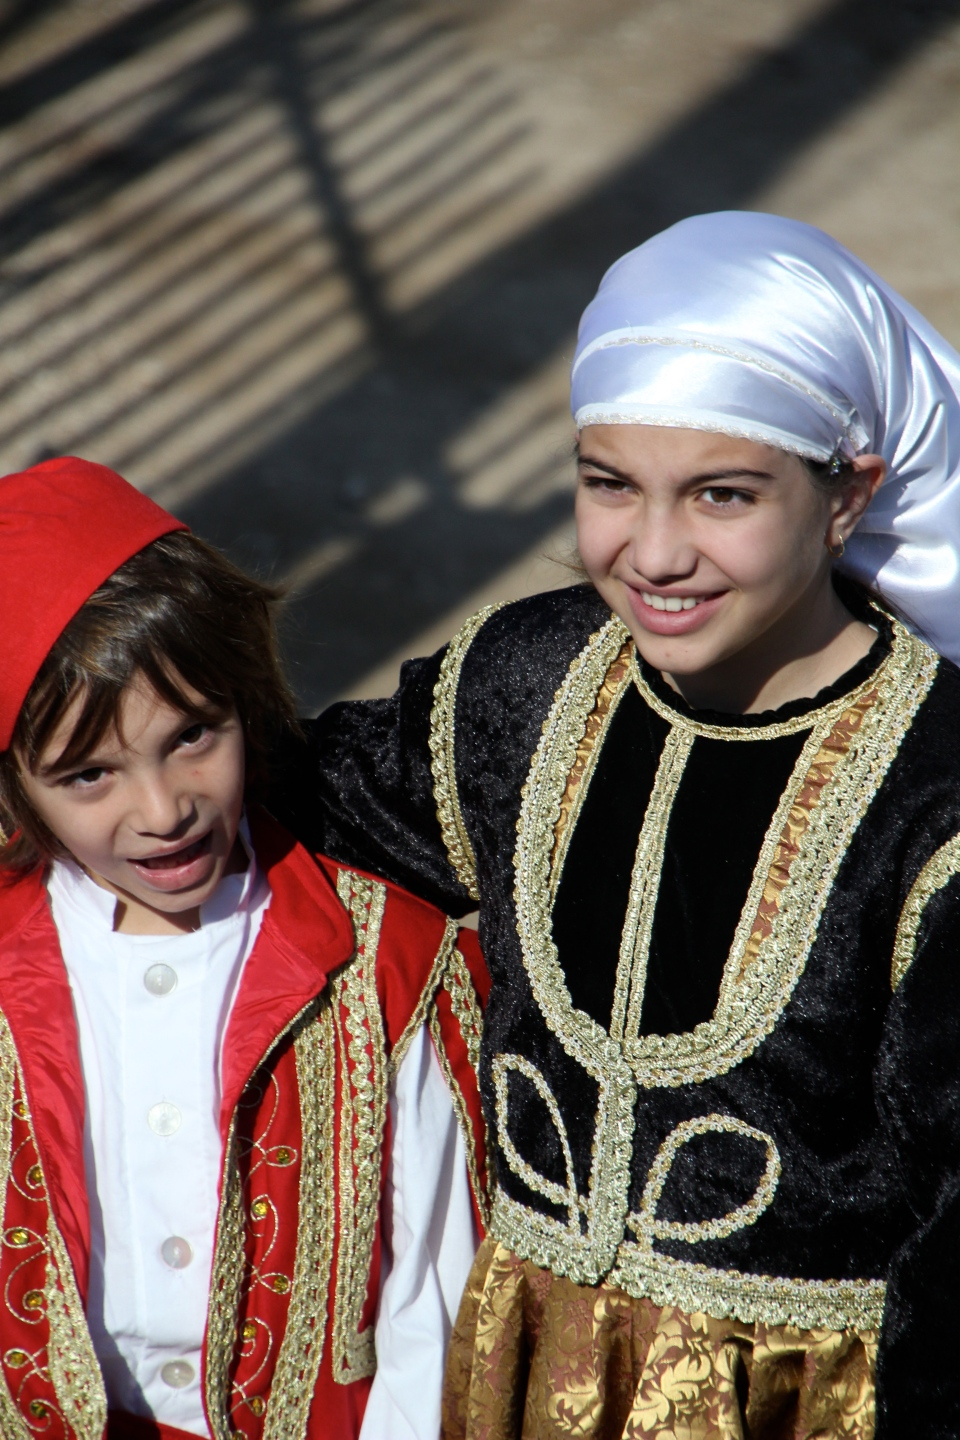 Children Dressed Up for Greek Independence Day Parade